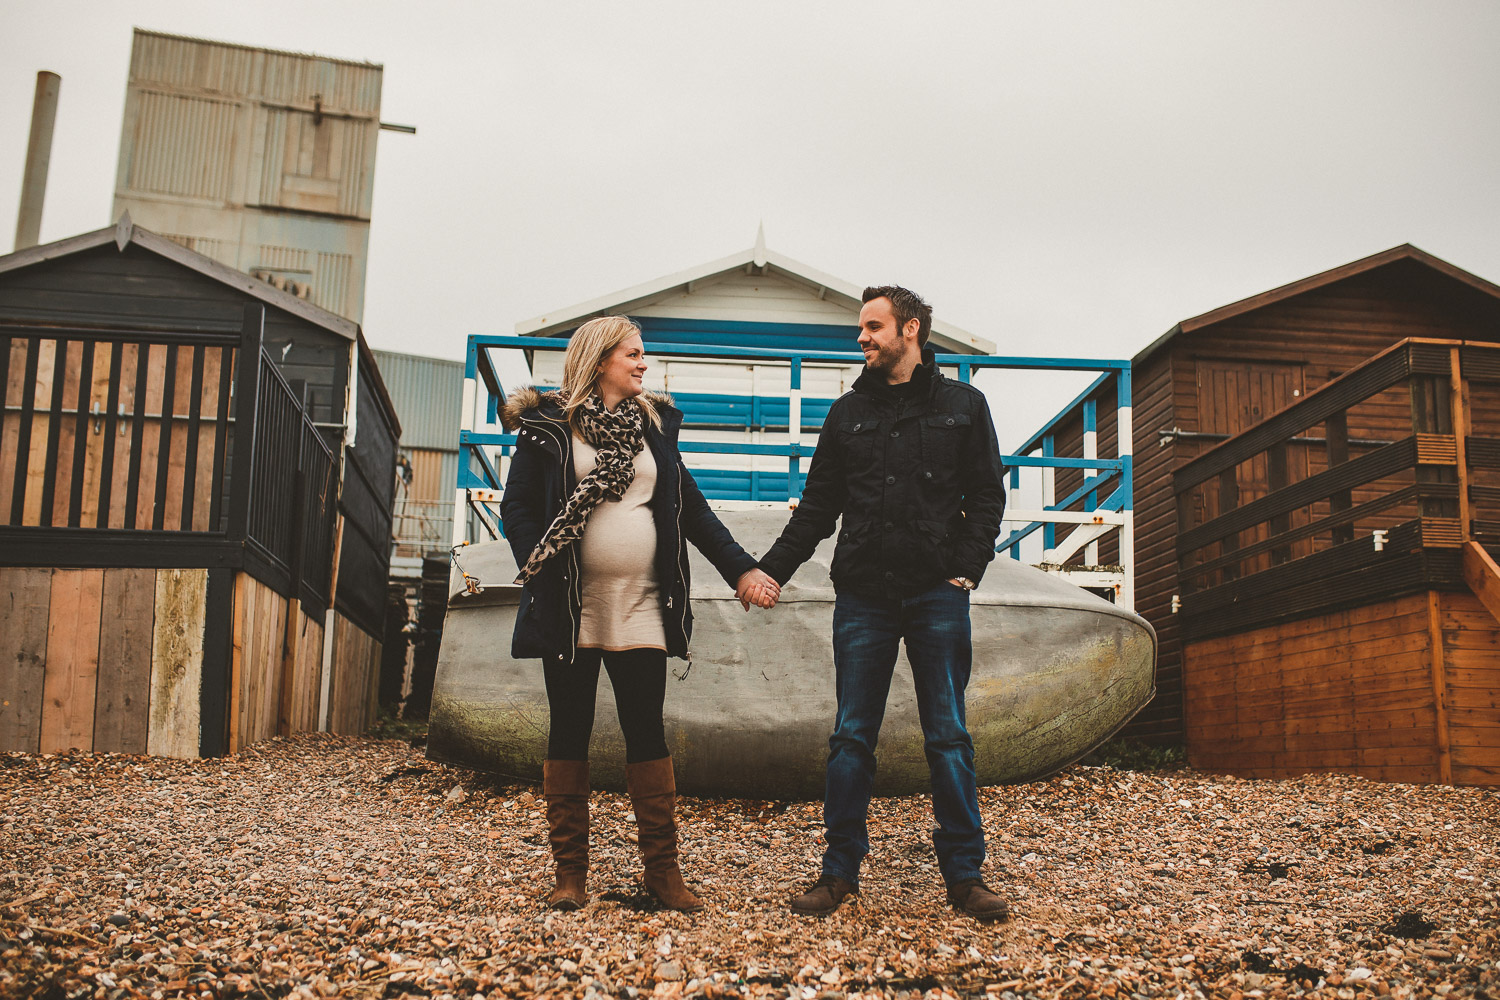 East-Quay-Whistable-Engagement-6.jpg